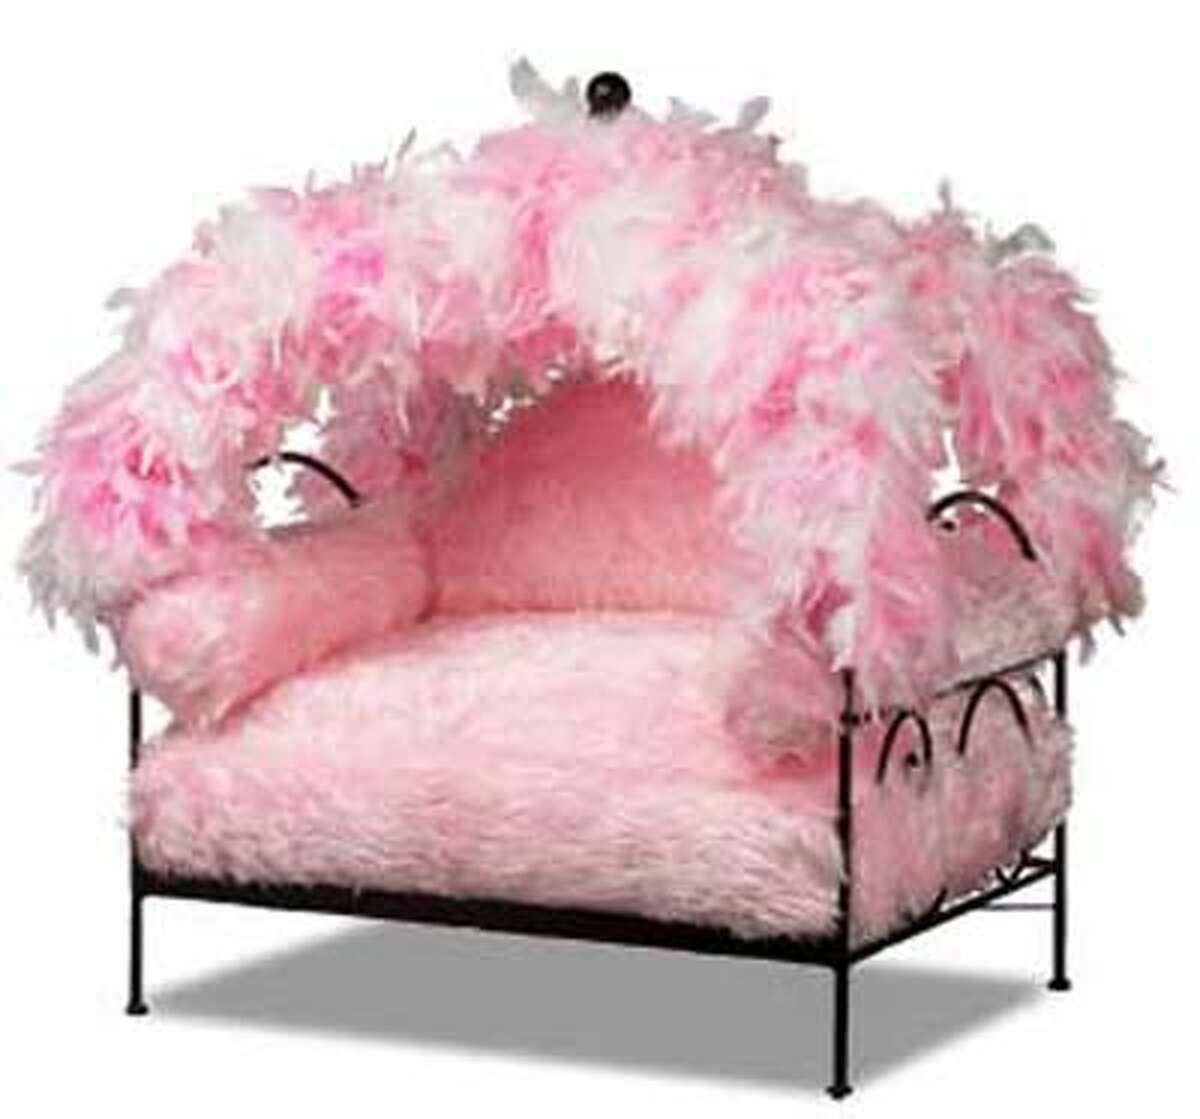 Pink Feather Canopy bed from www.catsplay.com accommodates pets up to 25 pounds; $329 plus $29.99 shipping.